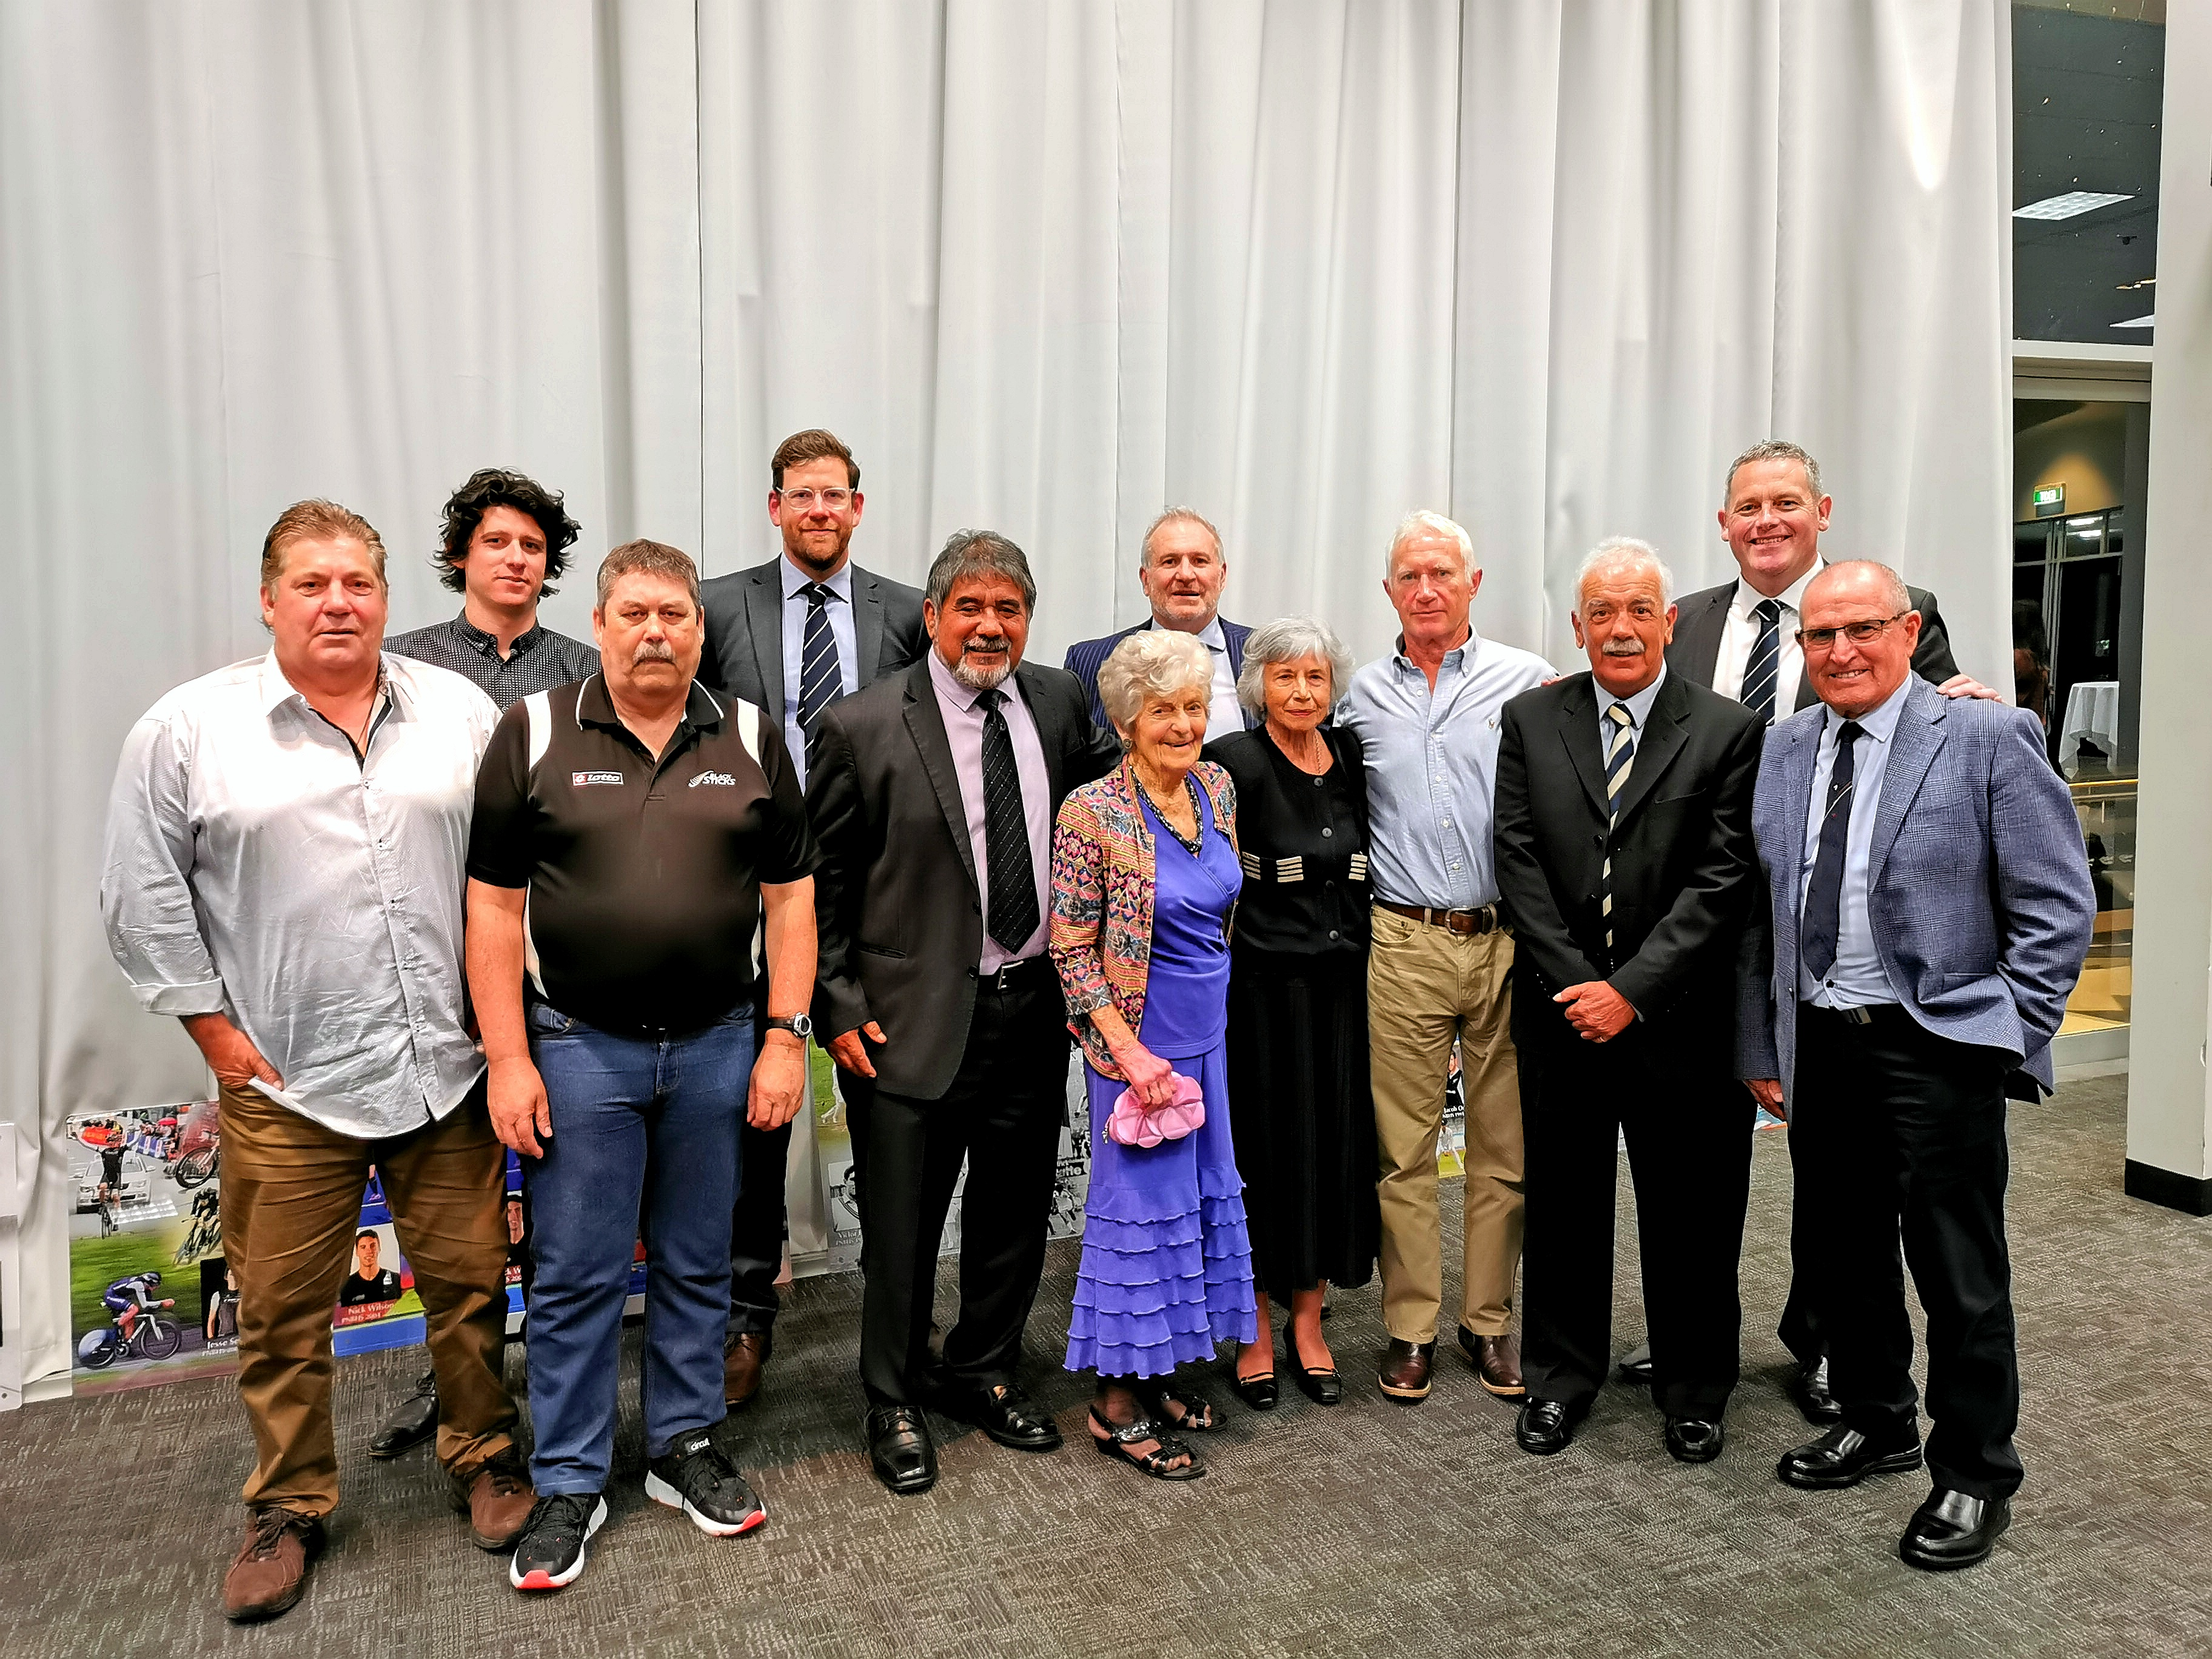 Inaugural induction into the PNBHS Sports Hall of Fame